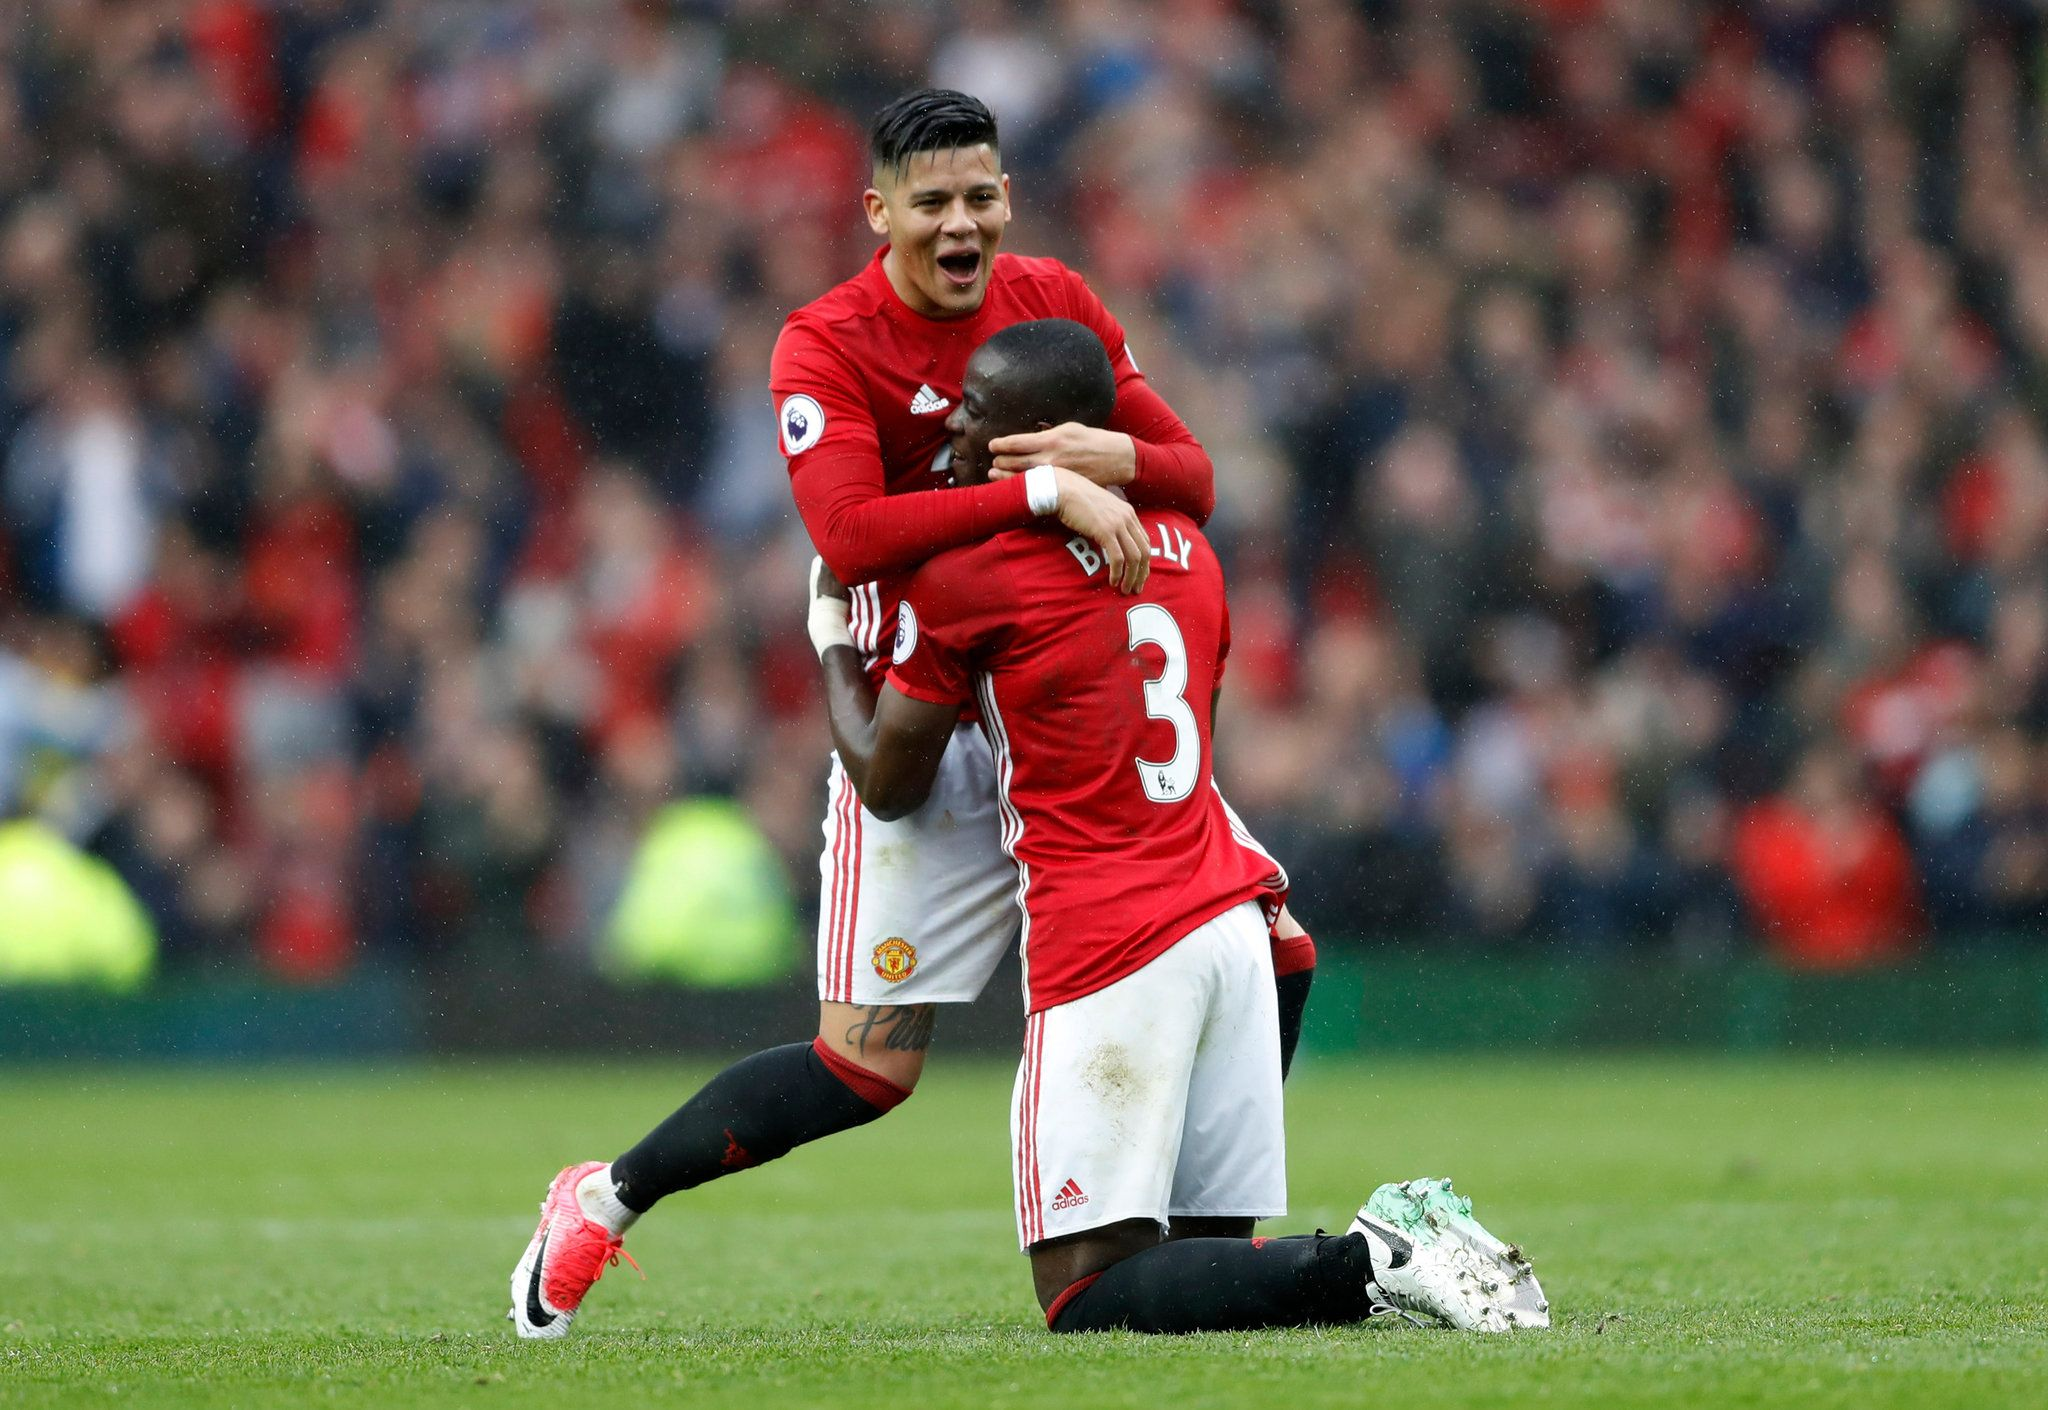 Manchester United Defeats Chelsea to Open Up Premier